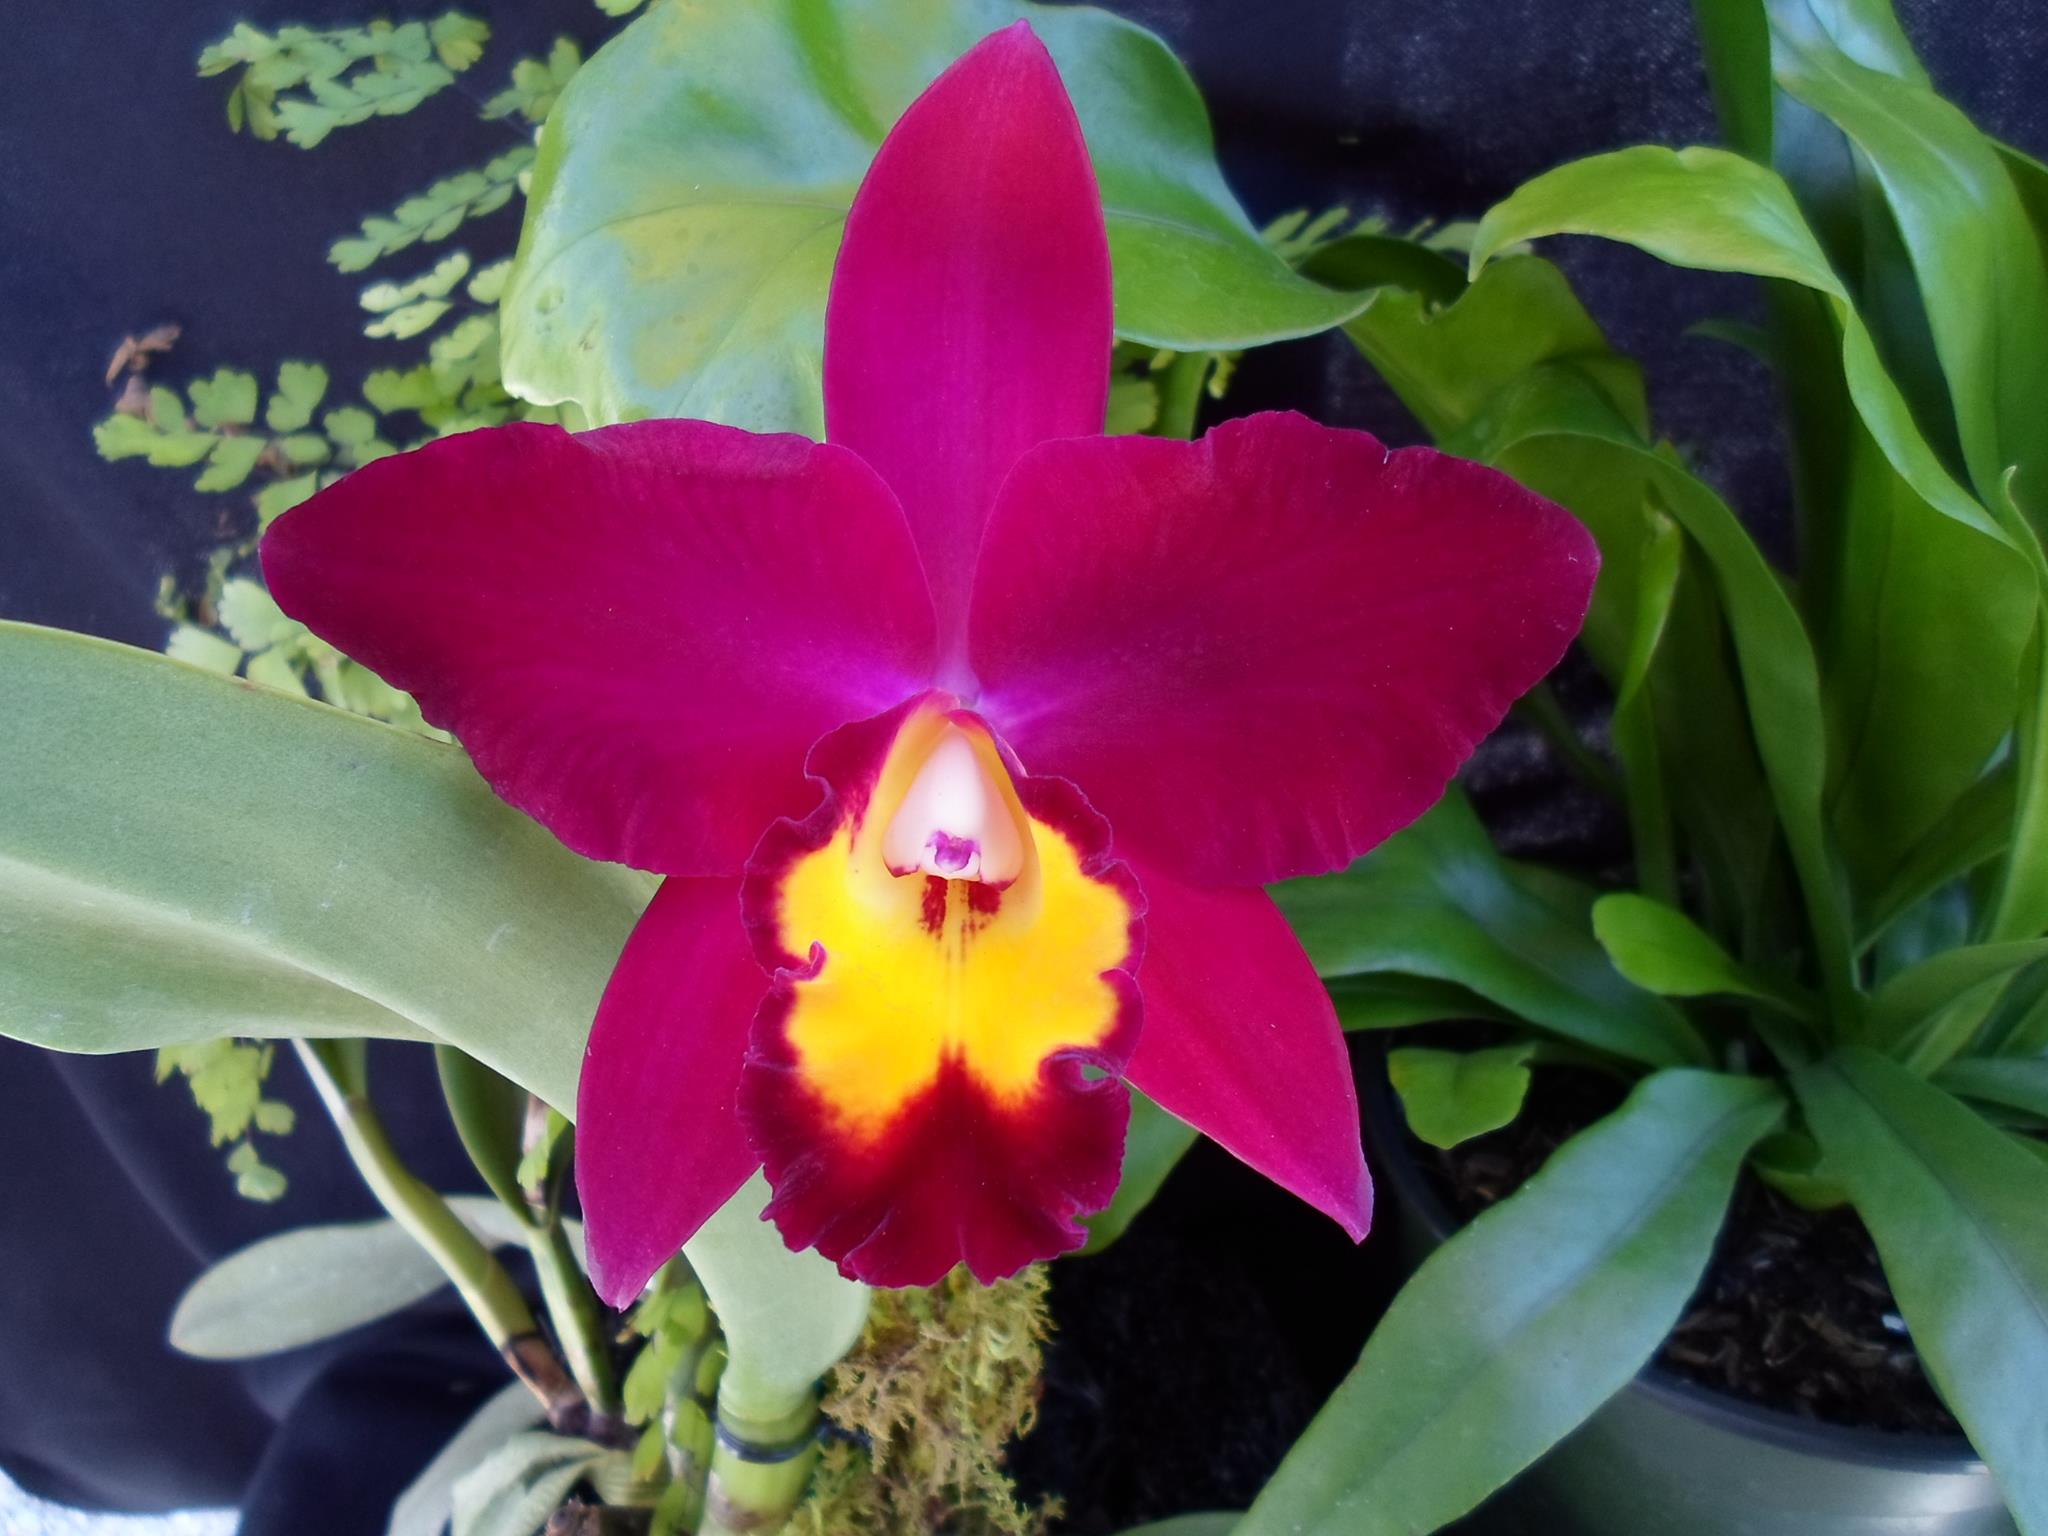 A purple and yellow orchid on a stem